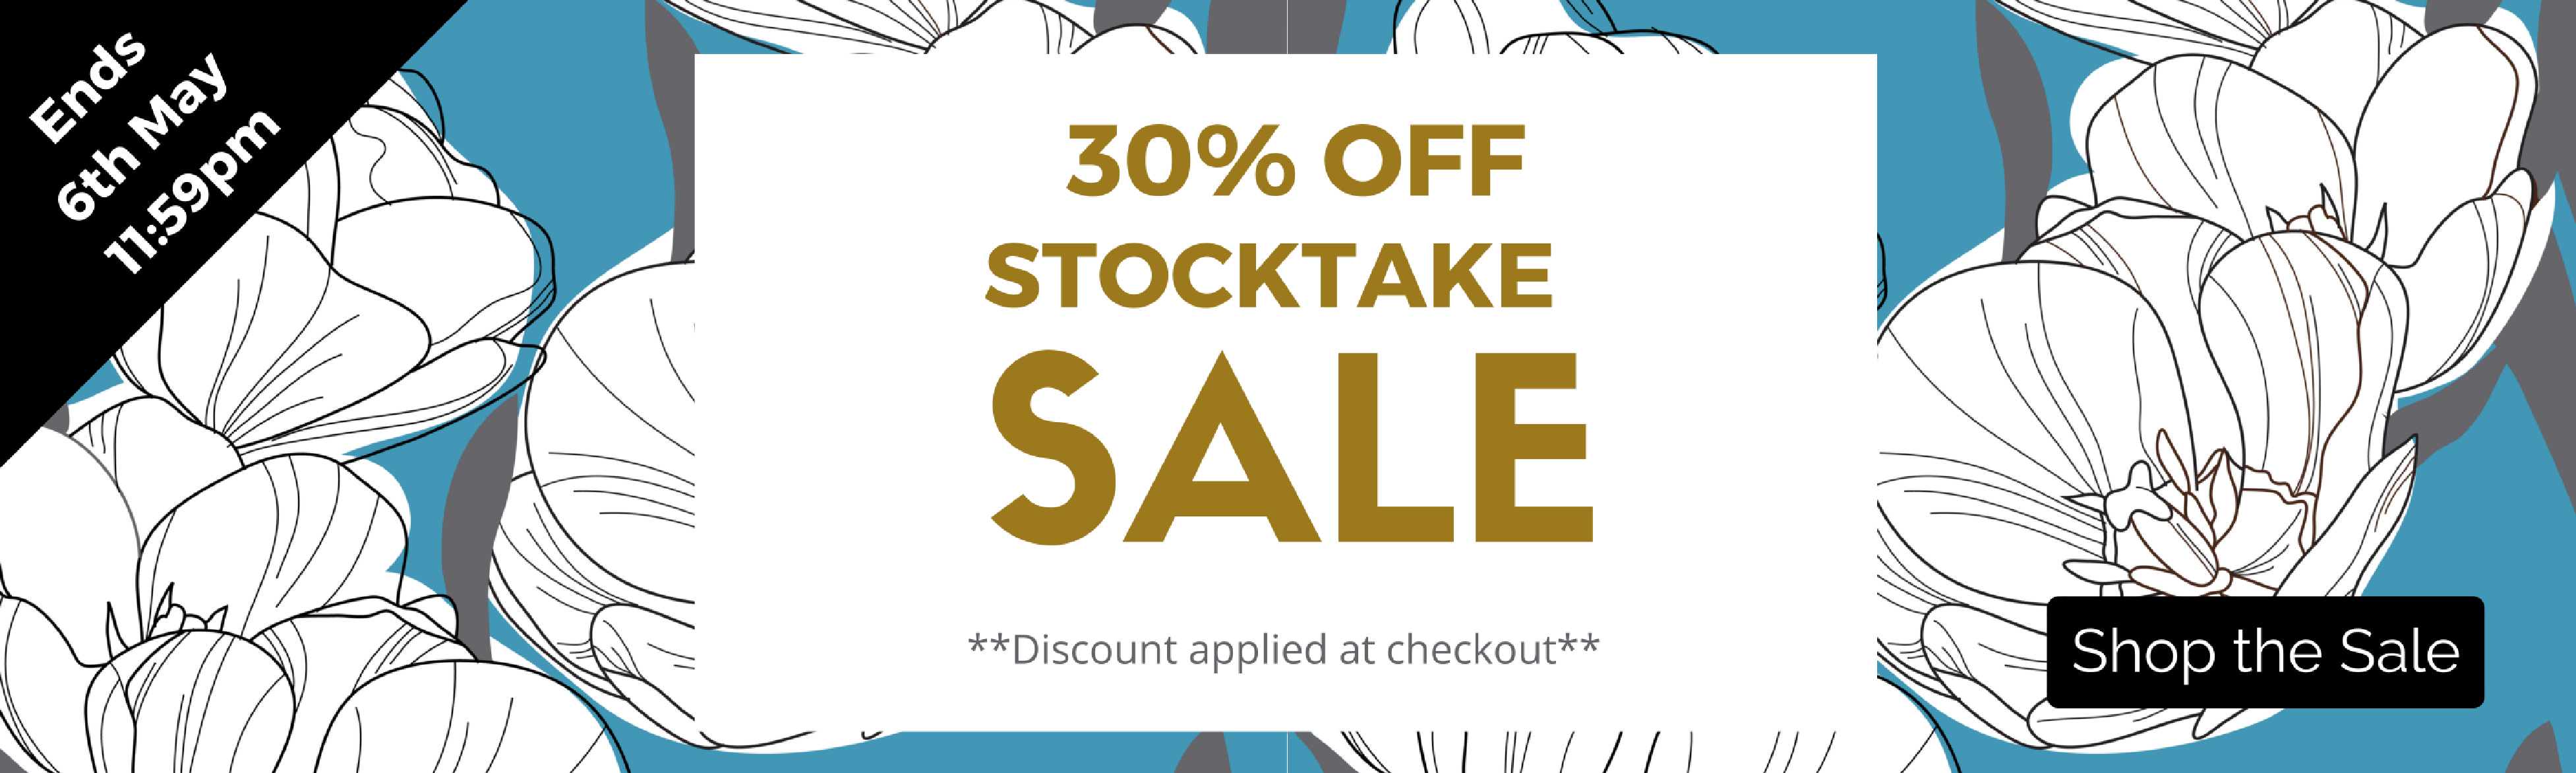 stocktakesale1704.png